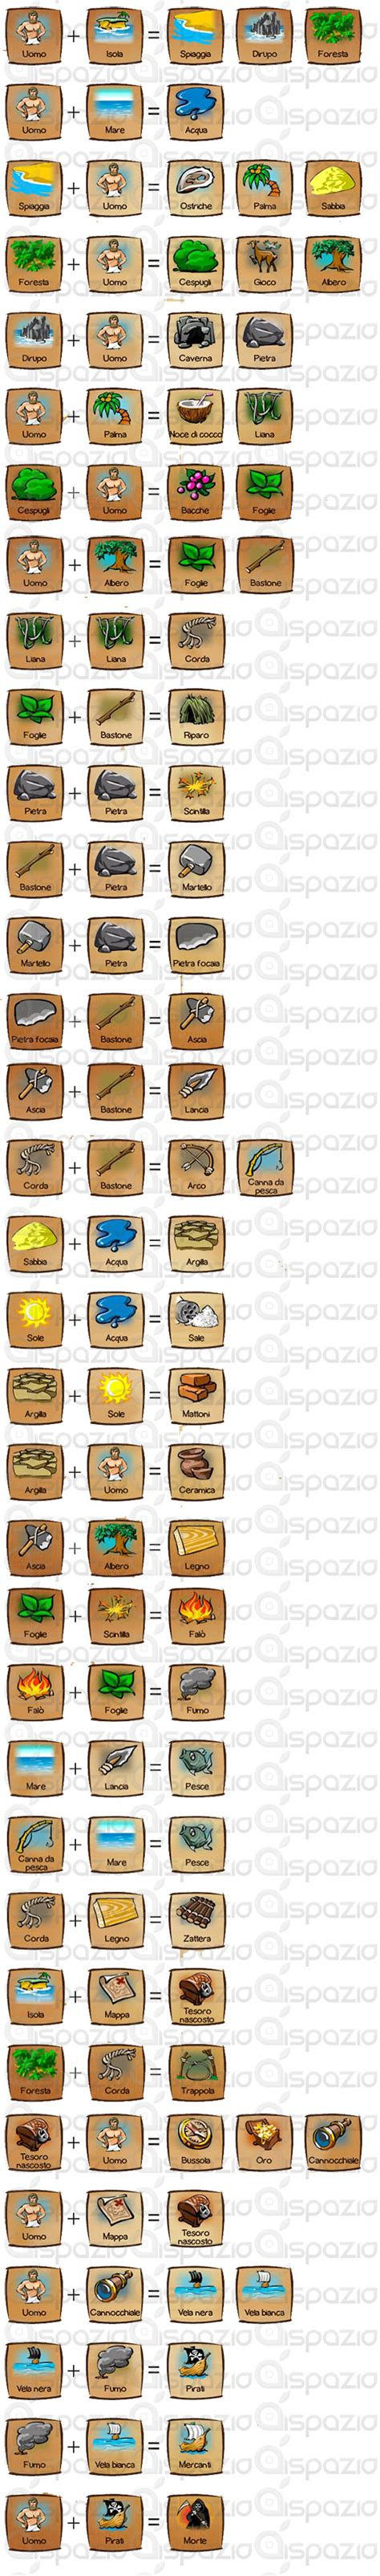 doodle god blitz walk doodle god walkthrough completiamo al 100 sopravvissuto